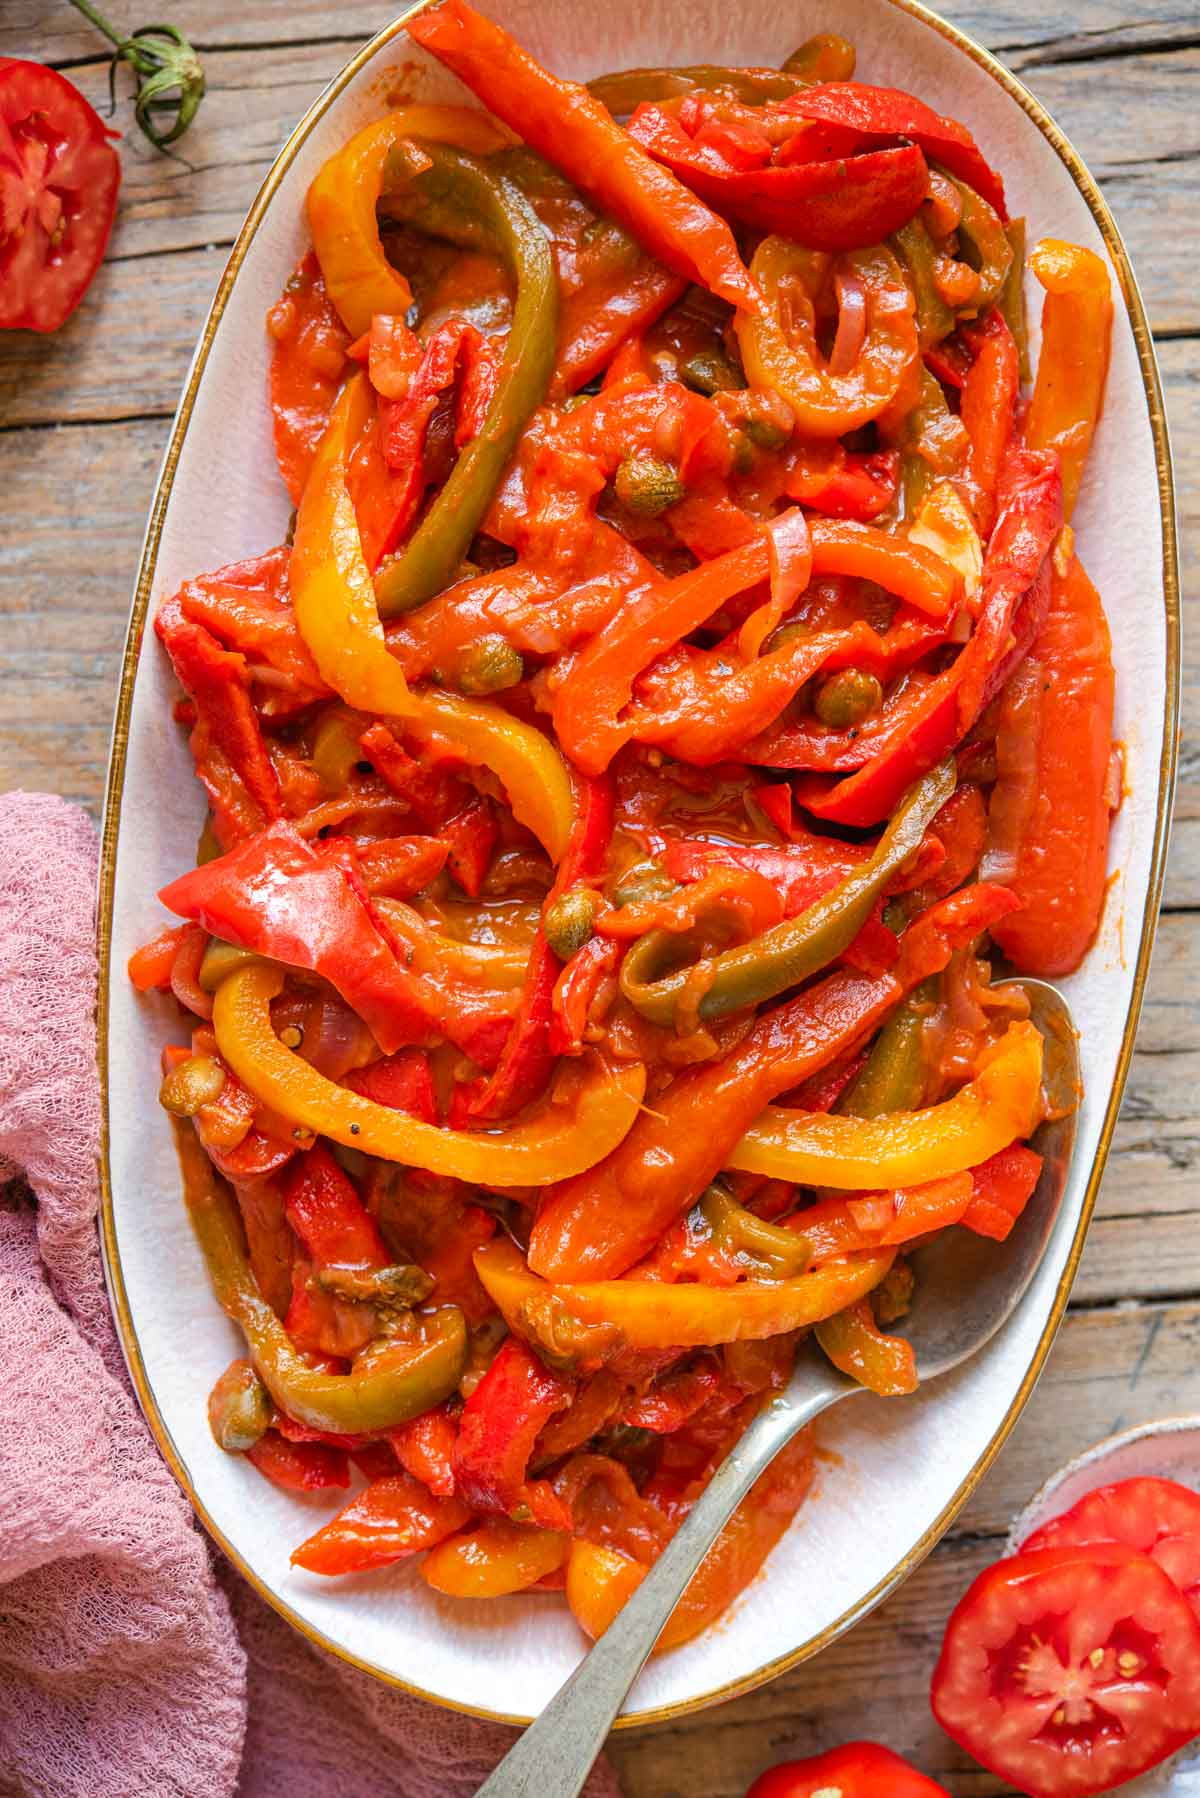 Peppers in tomato sauce on a serving plate